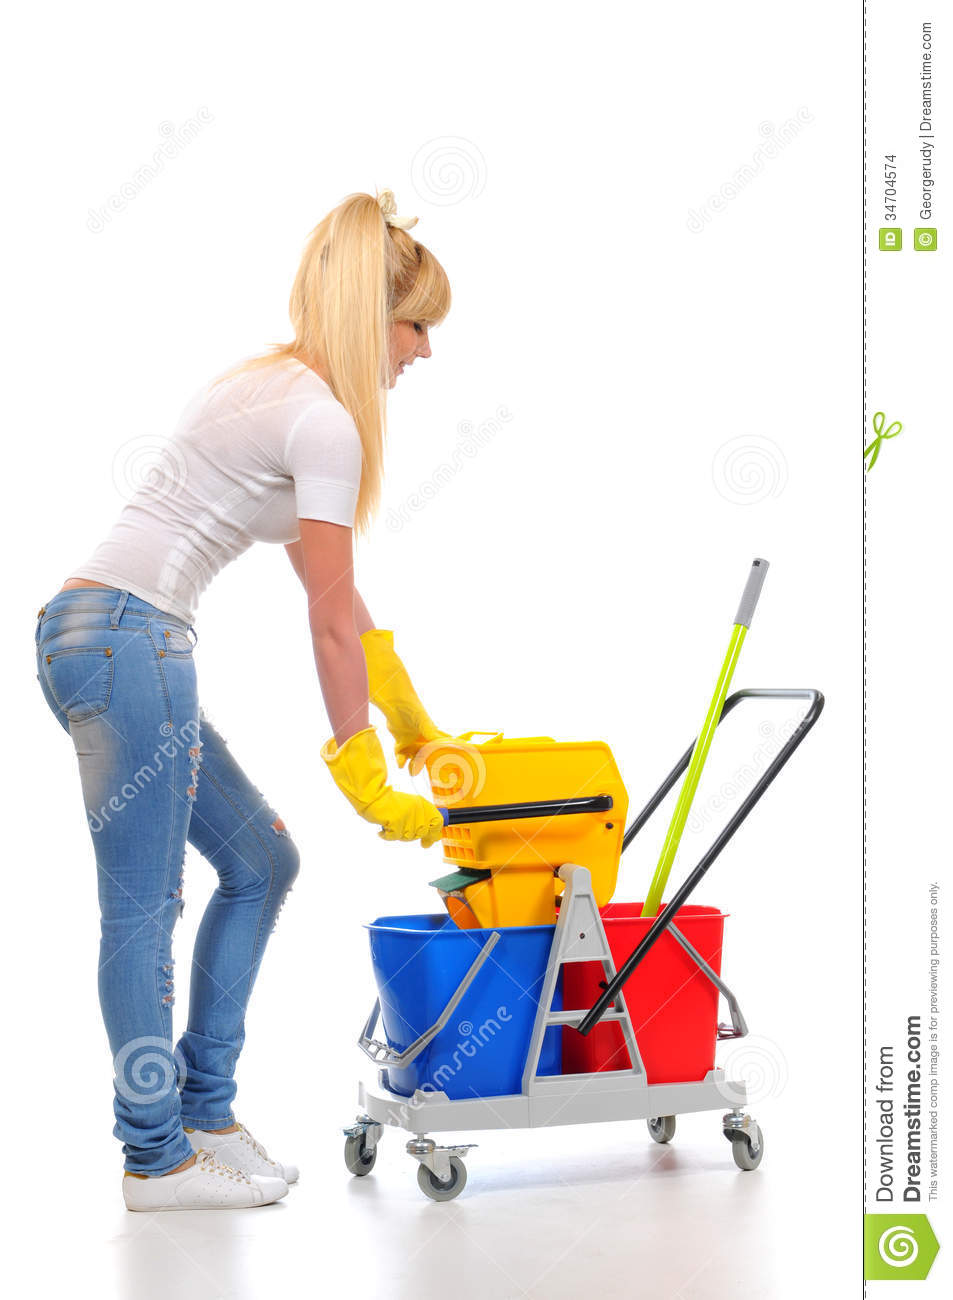 Dusty Home Cleaning